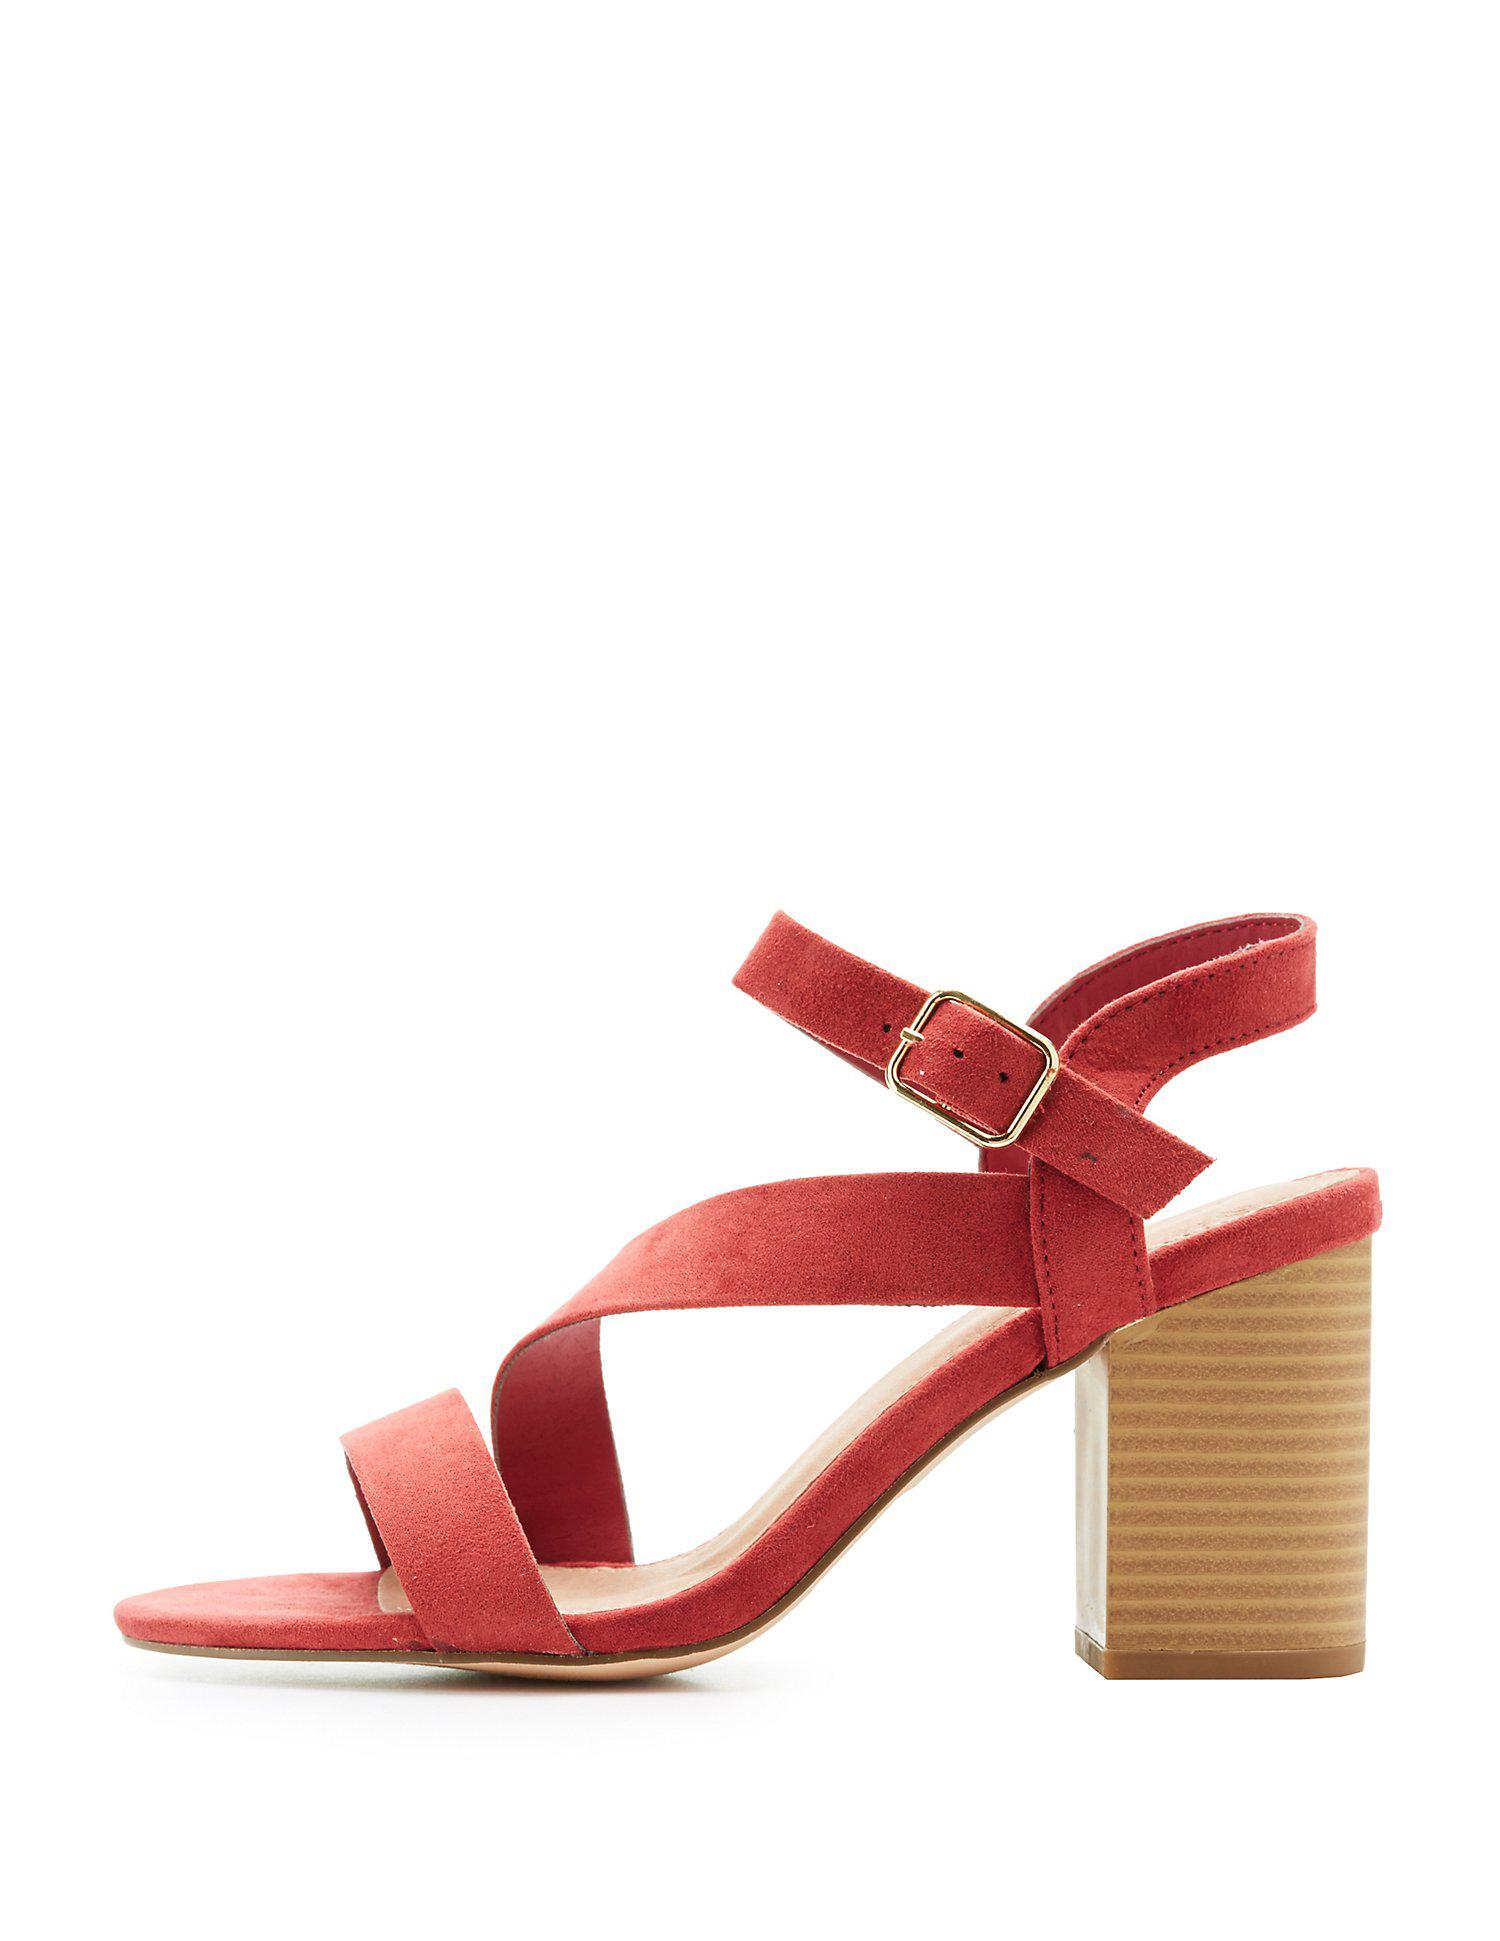 8e82f39bb84 Lyst - Charlotte Russe Strappy Block Heel Sandals in Red